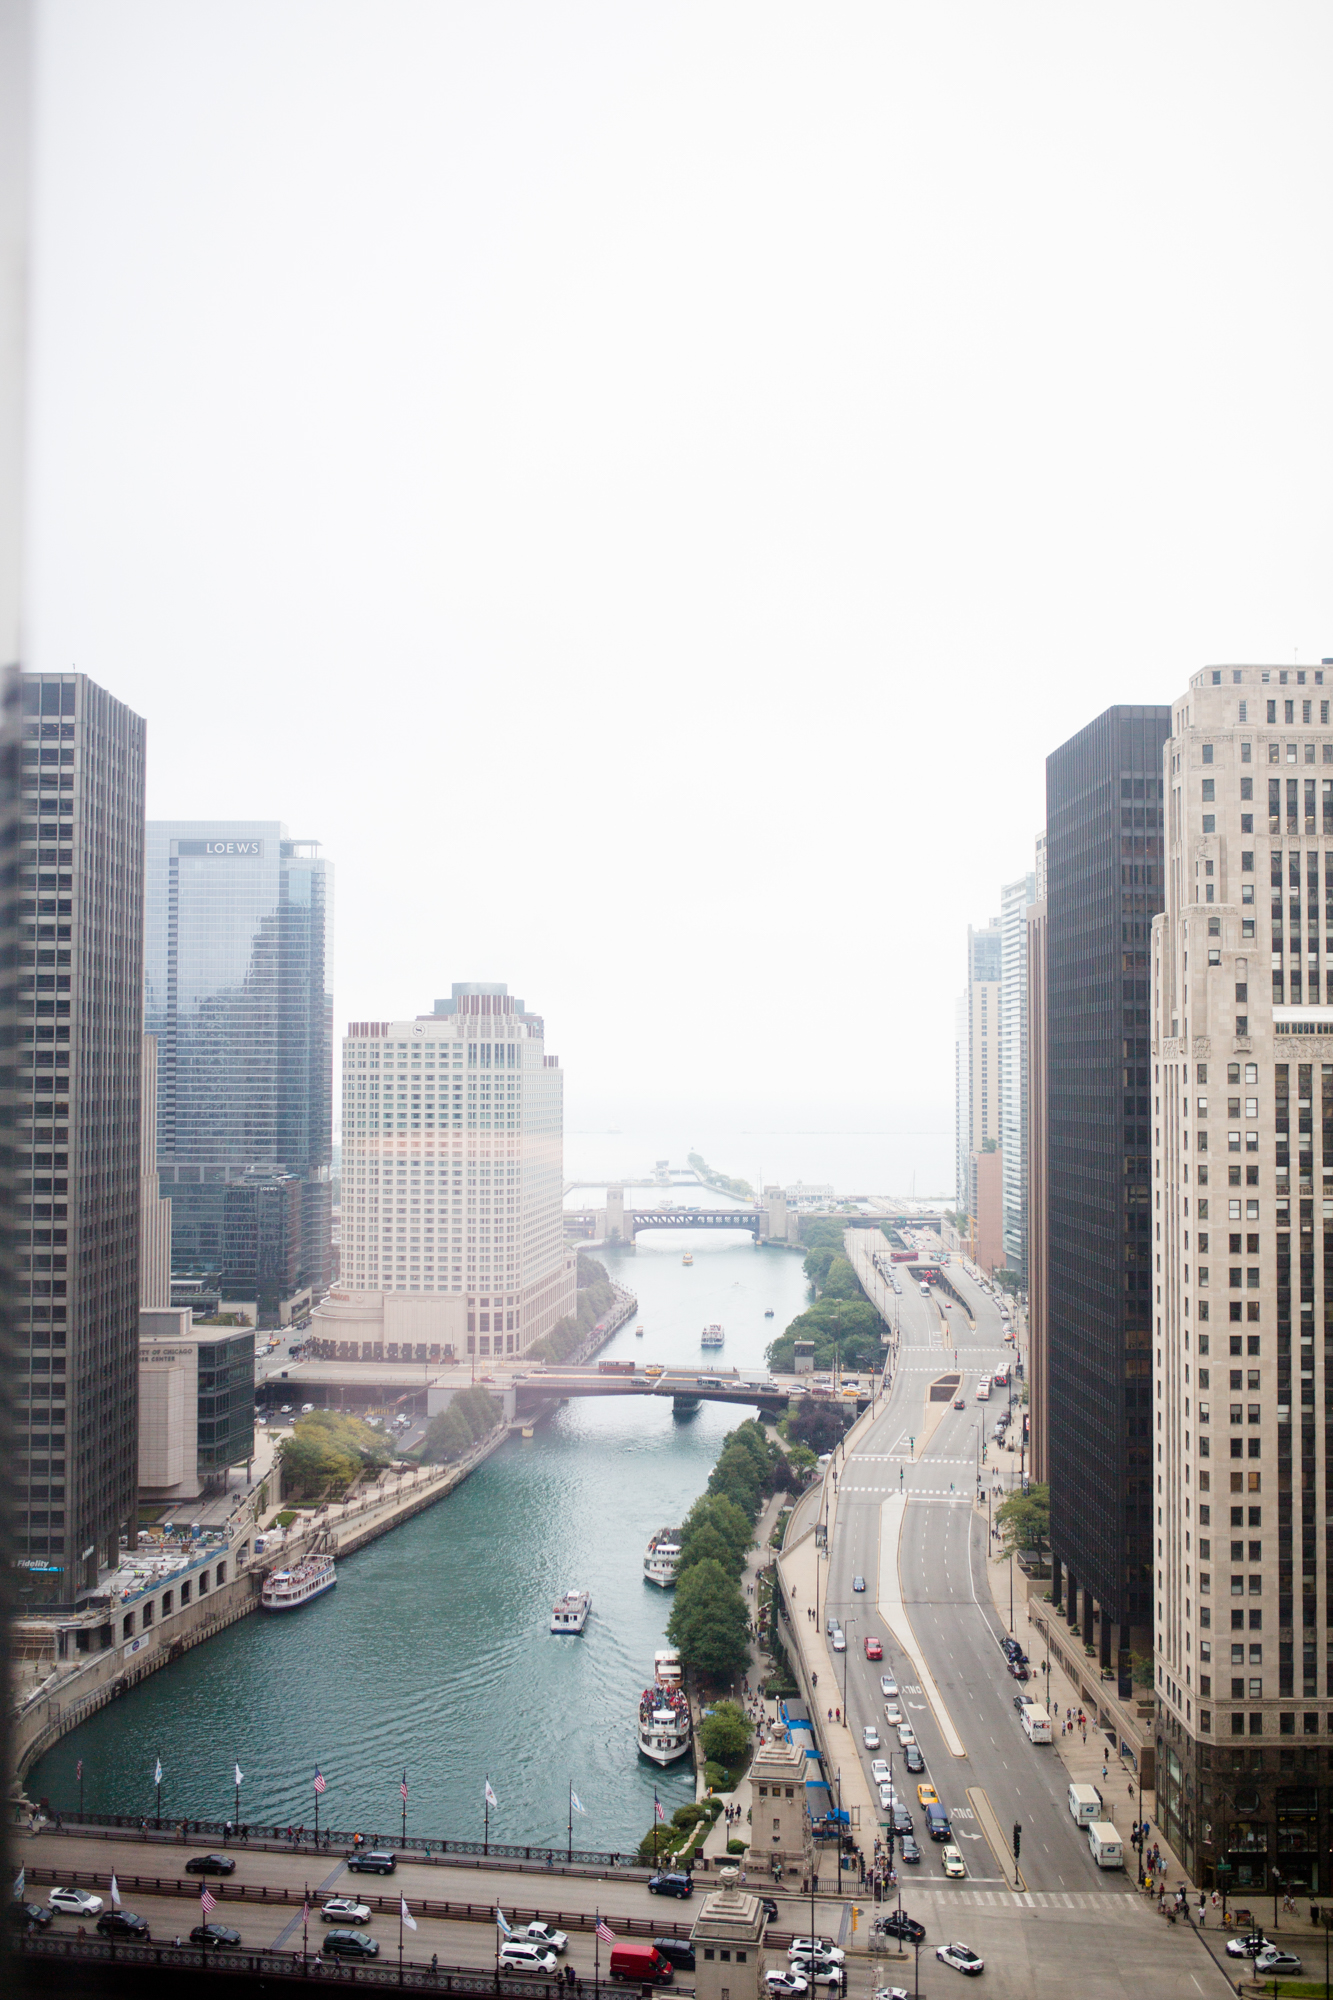 View of the Chicago River from the bridal suite at the Trump Hotel